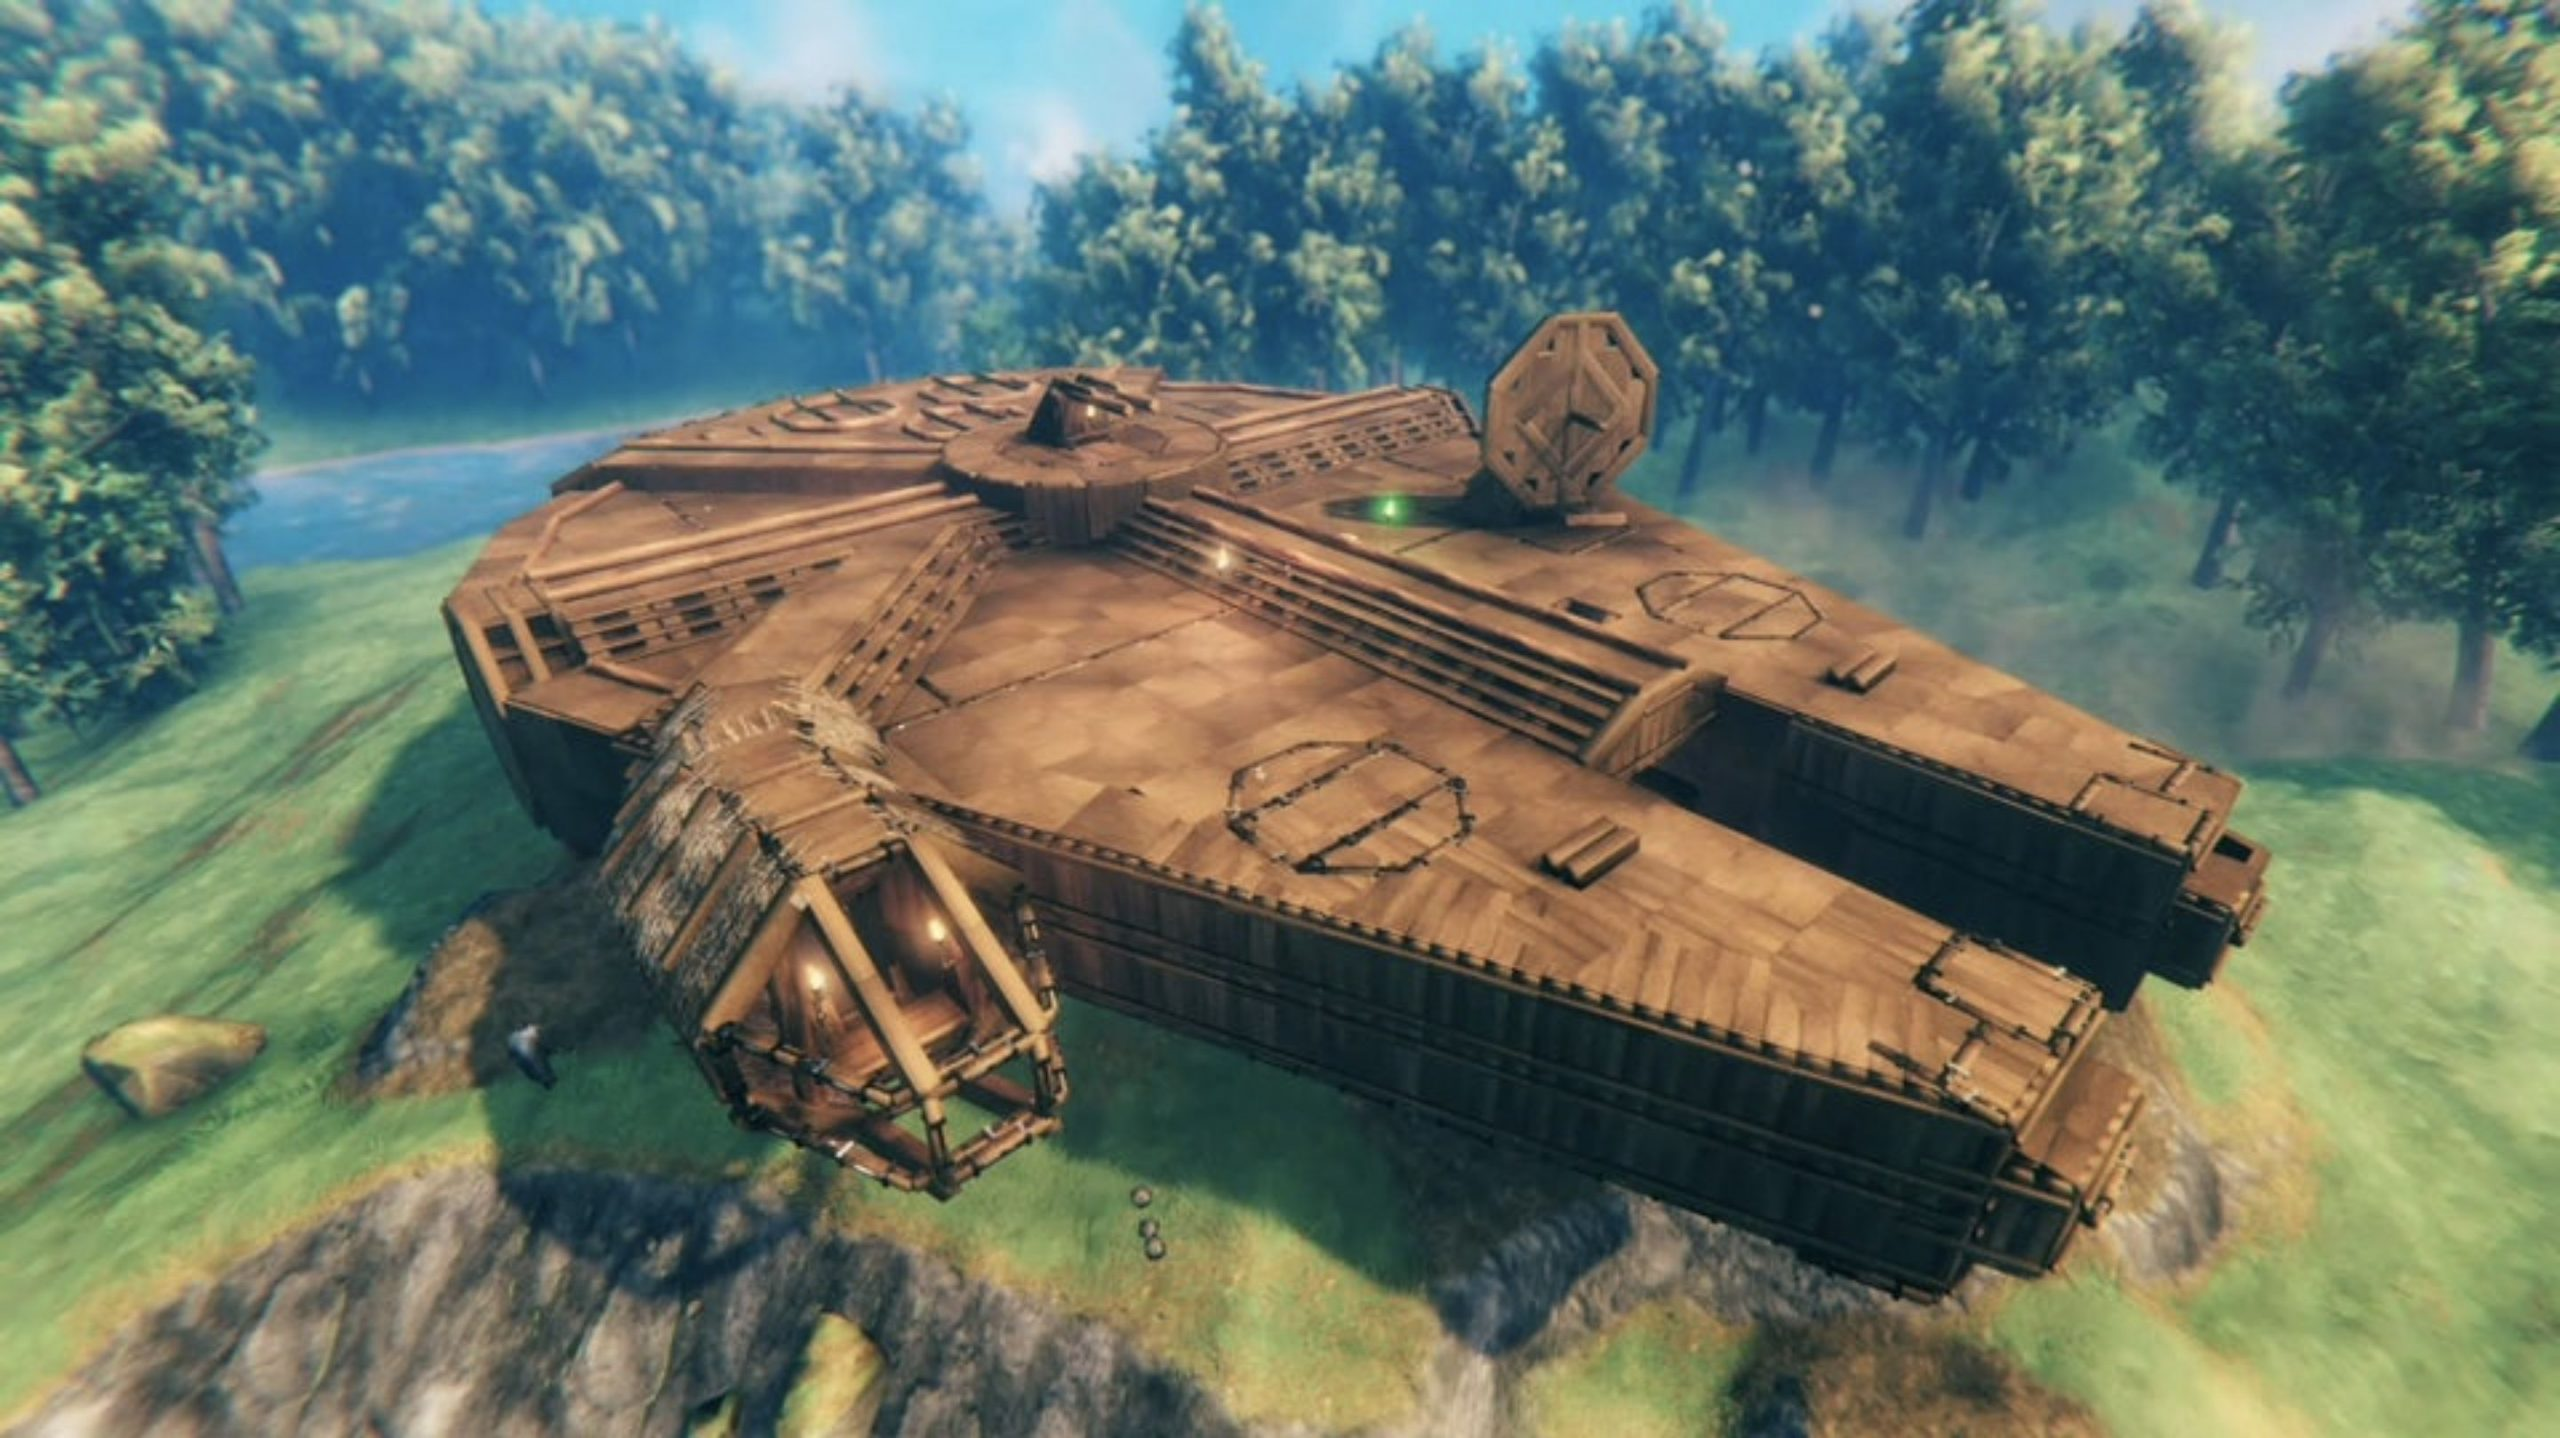 Valheim player recreates the Millennium Falcon at 1:1 scale